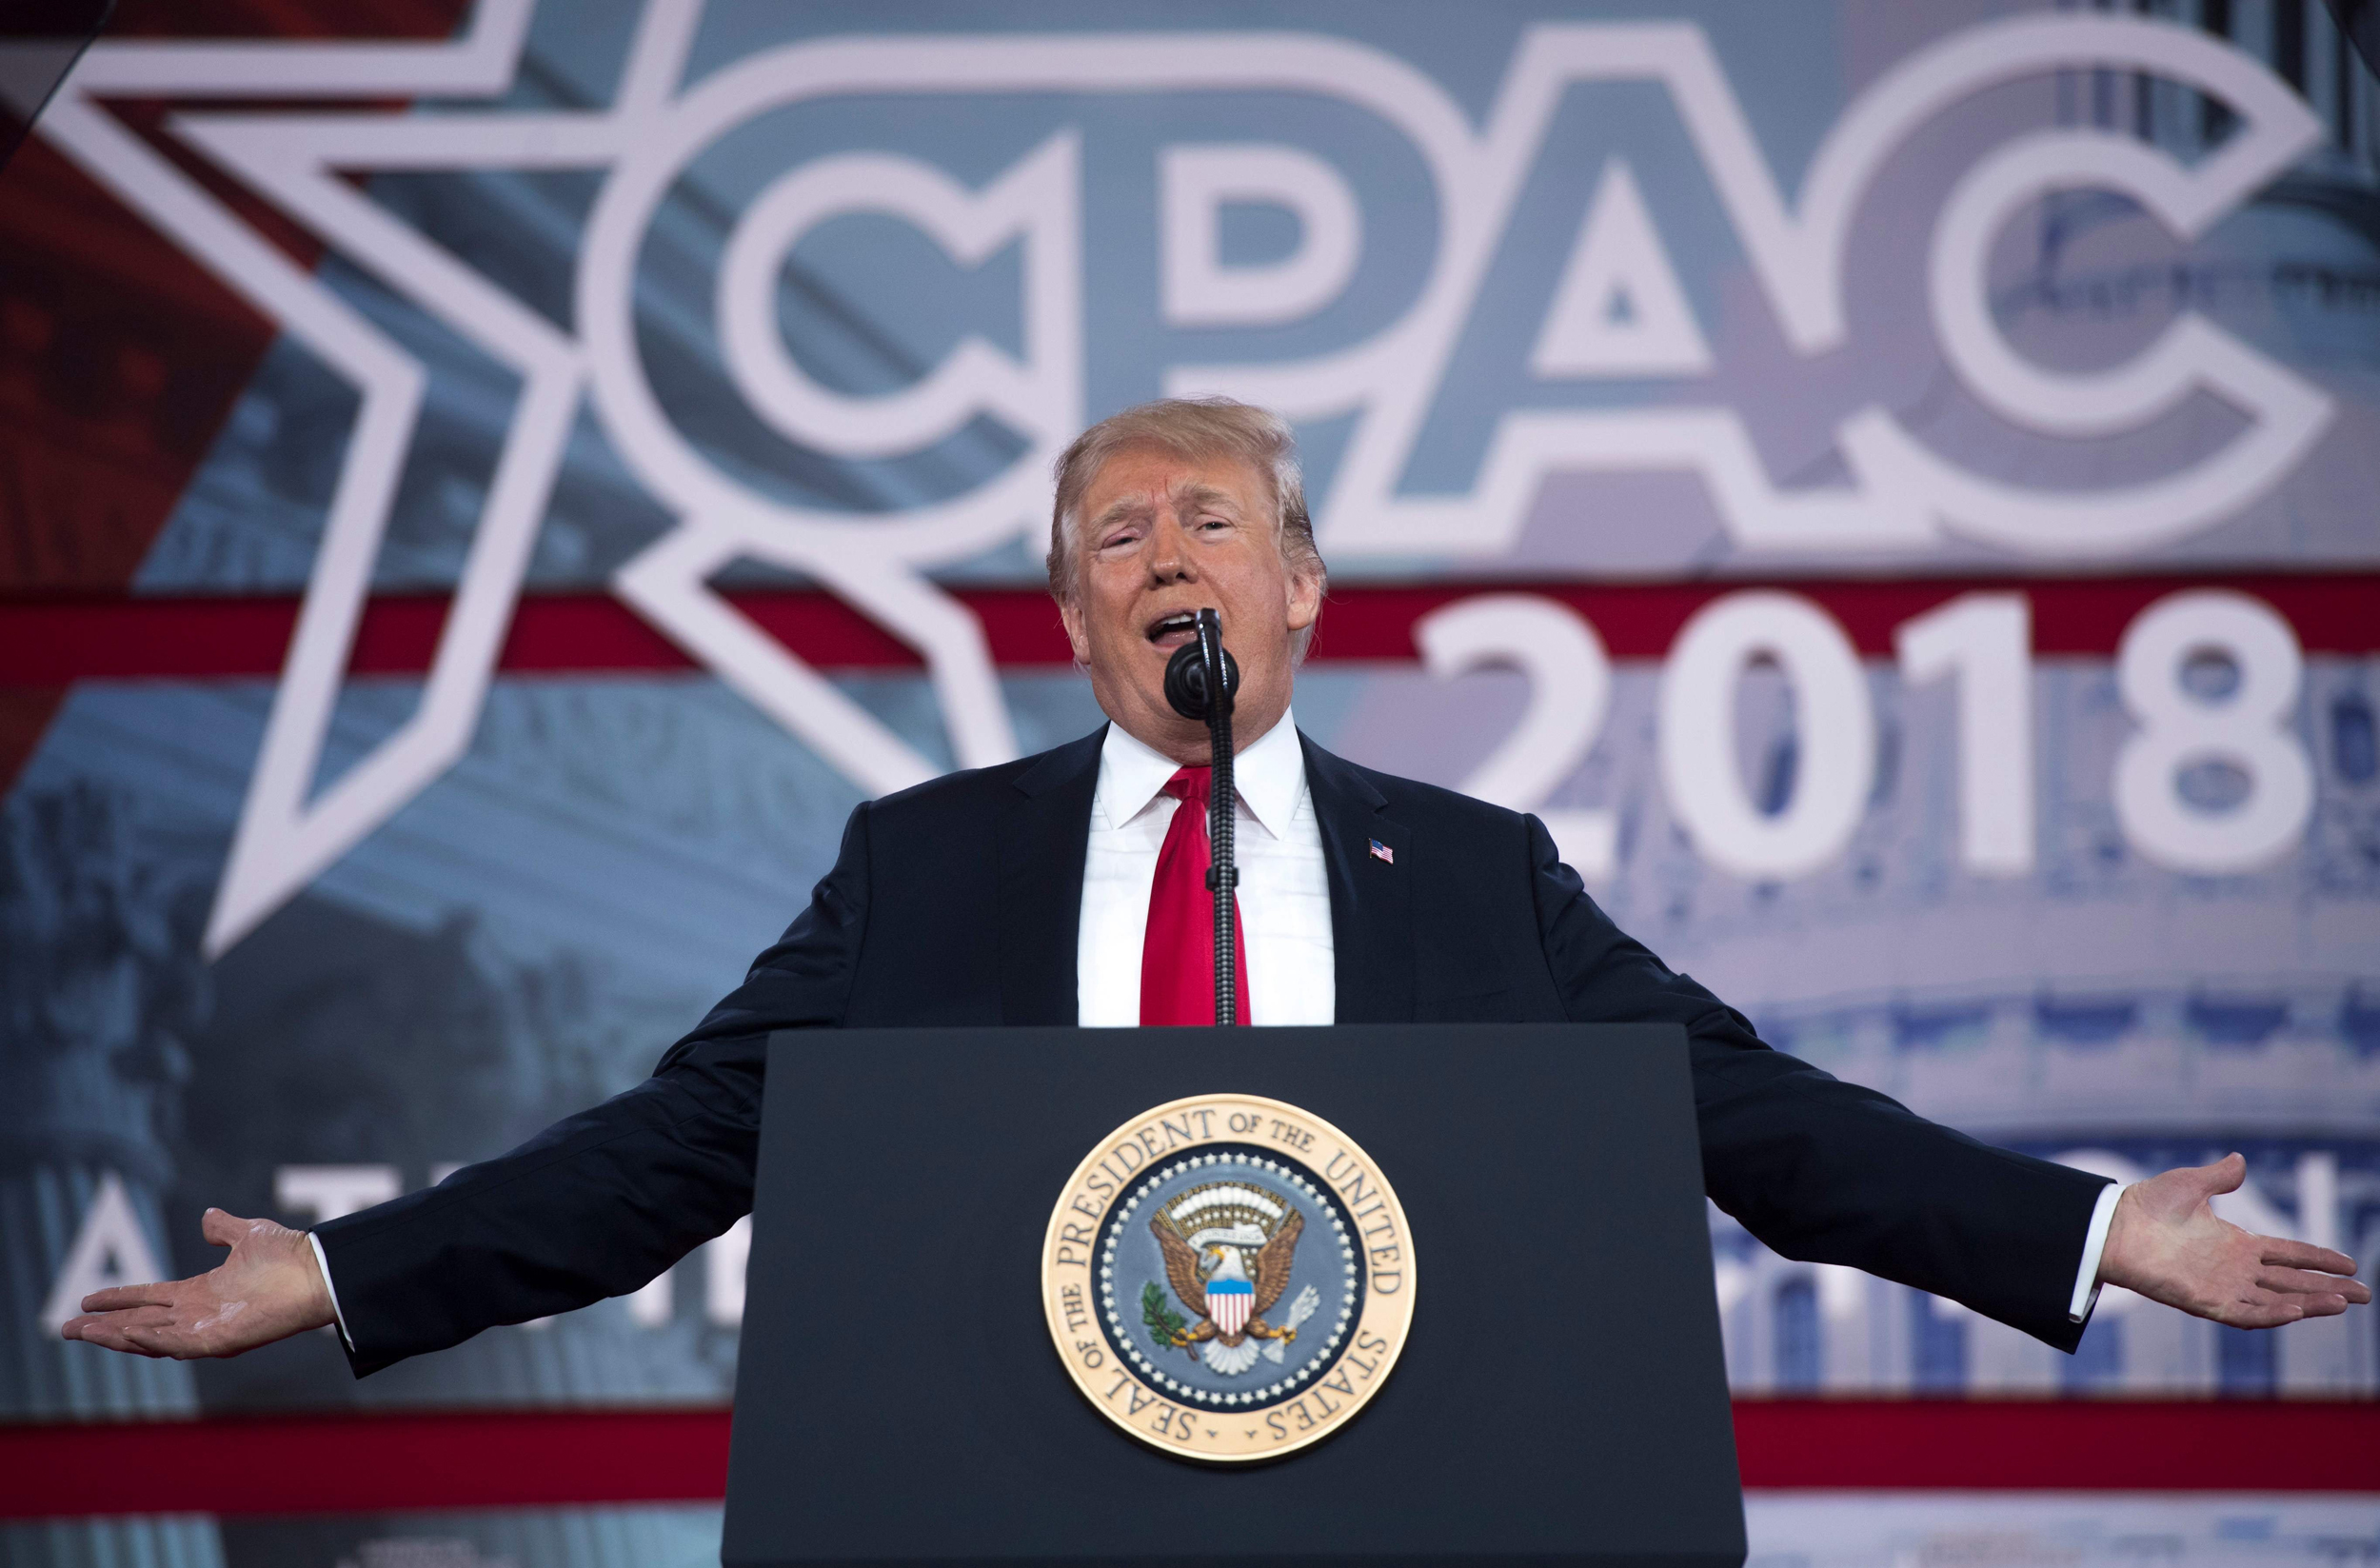 CPAC 2018's extreme message proves the GOP has embraced its